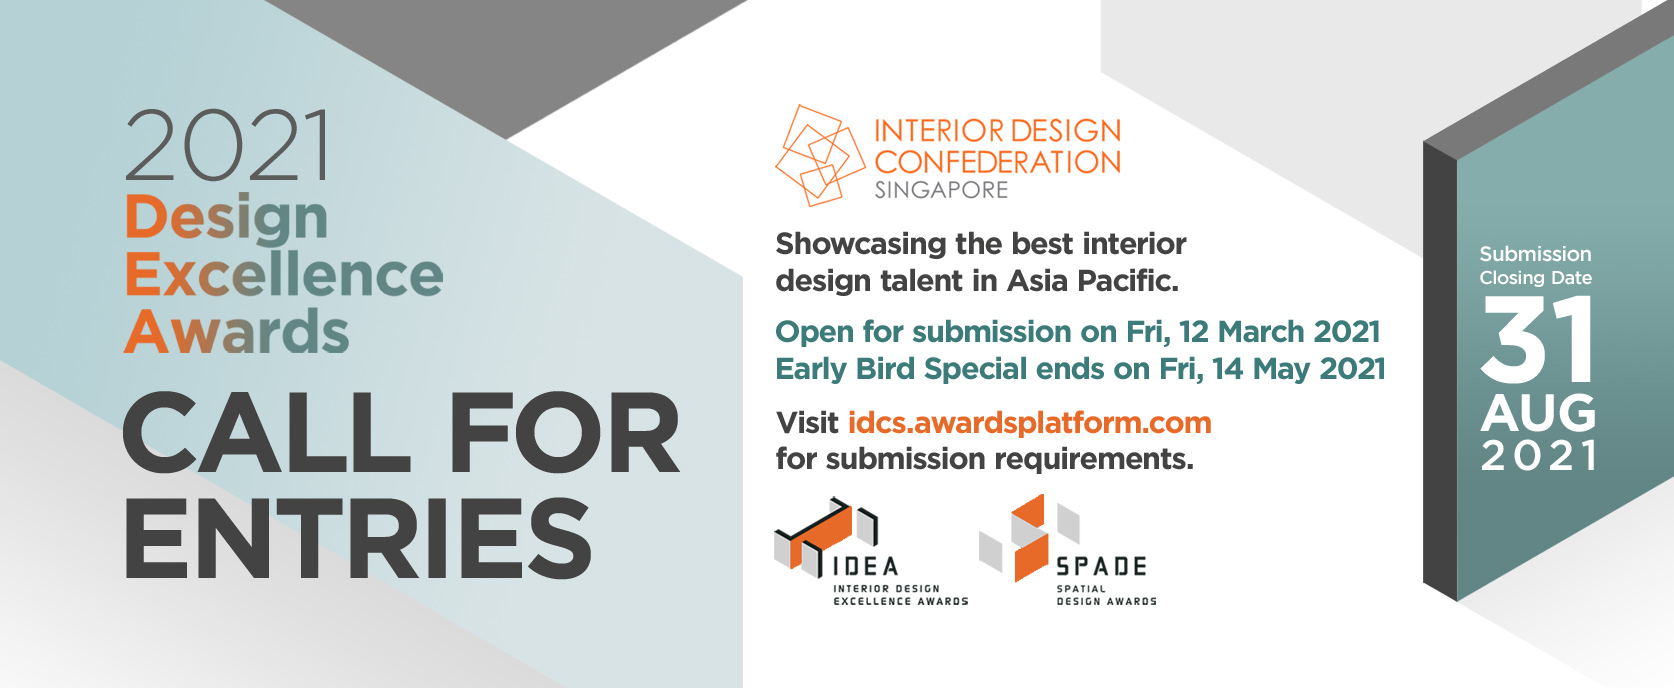 squarerooms idcs design excellence awards interior design confederation singapore submissions call for entries 2021 best design competition asia pacific